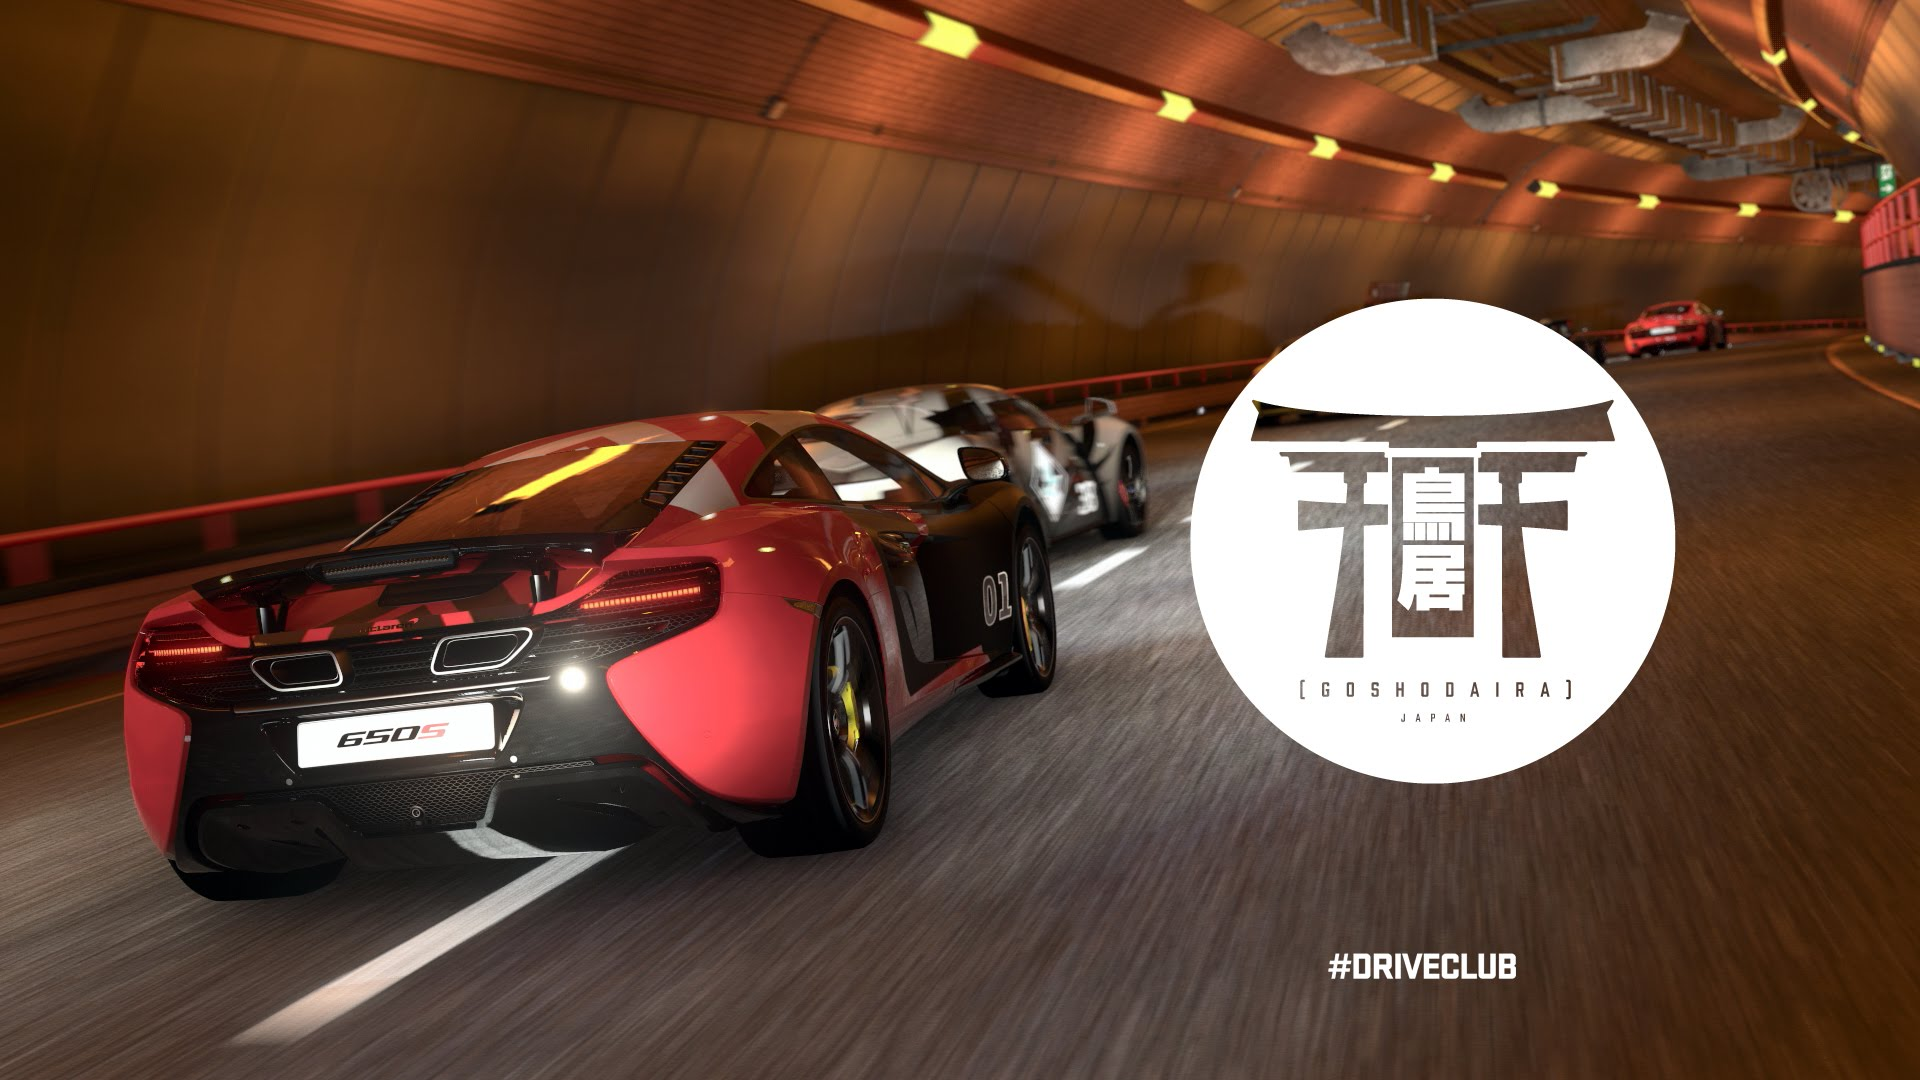 Driveclub video per Goshodaira